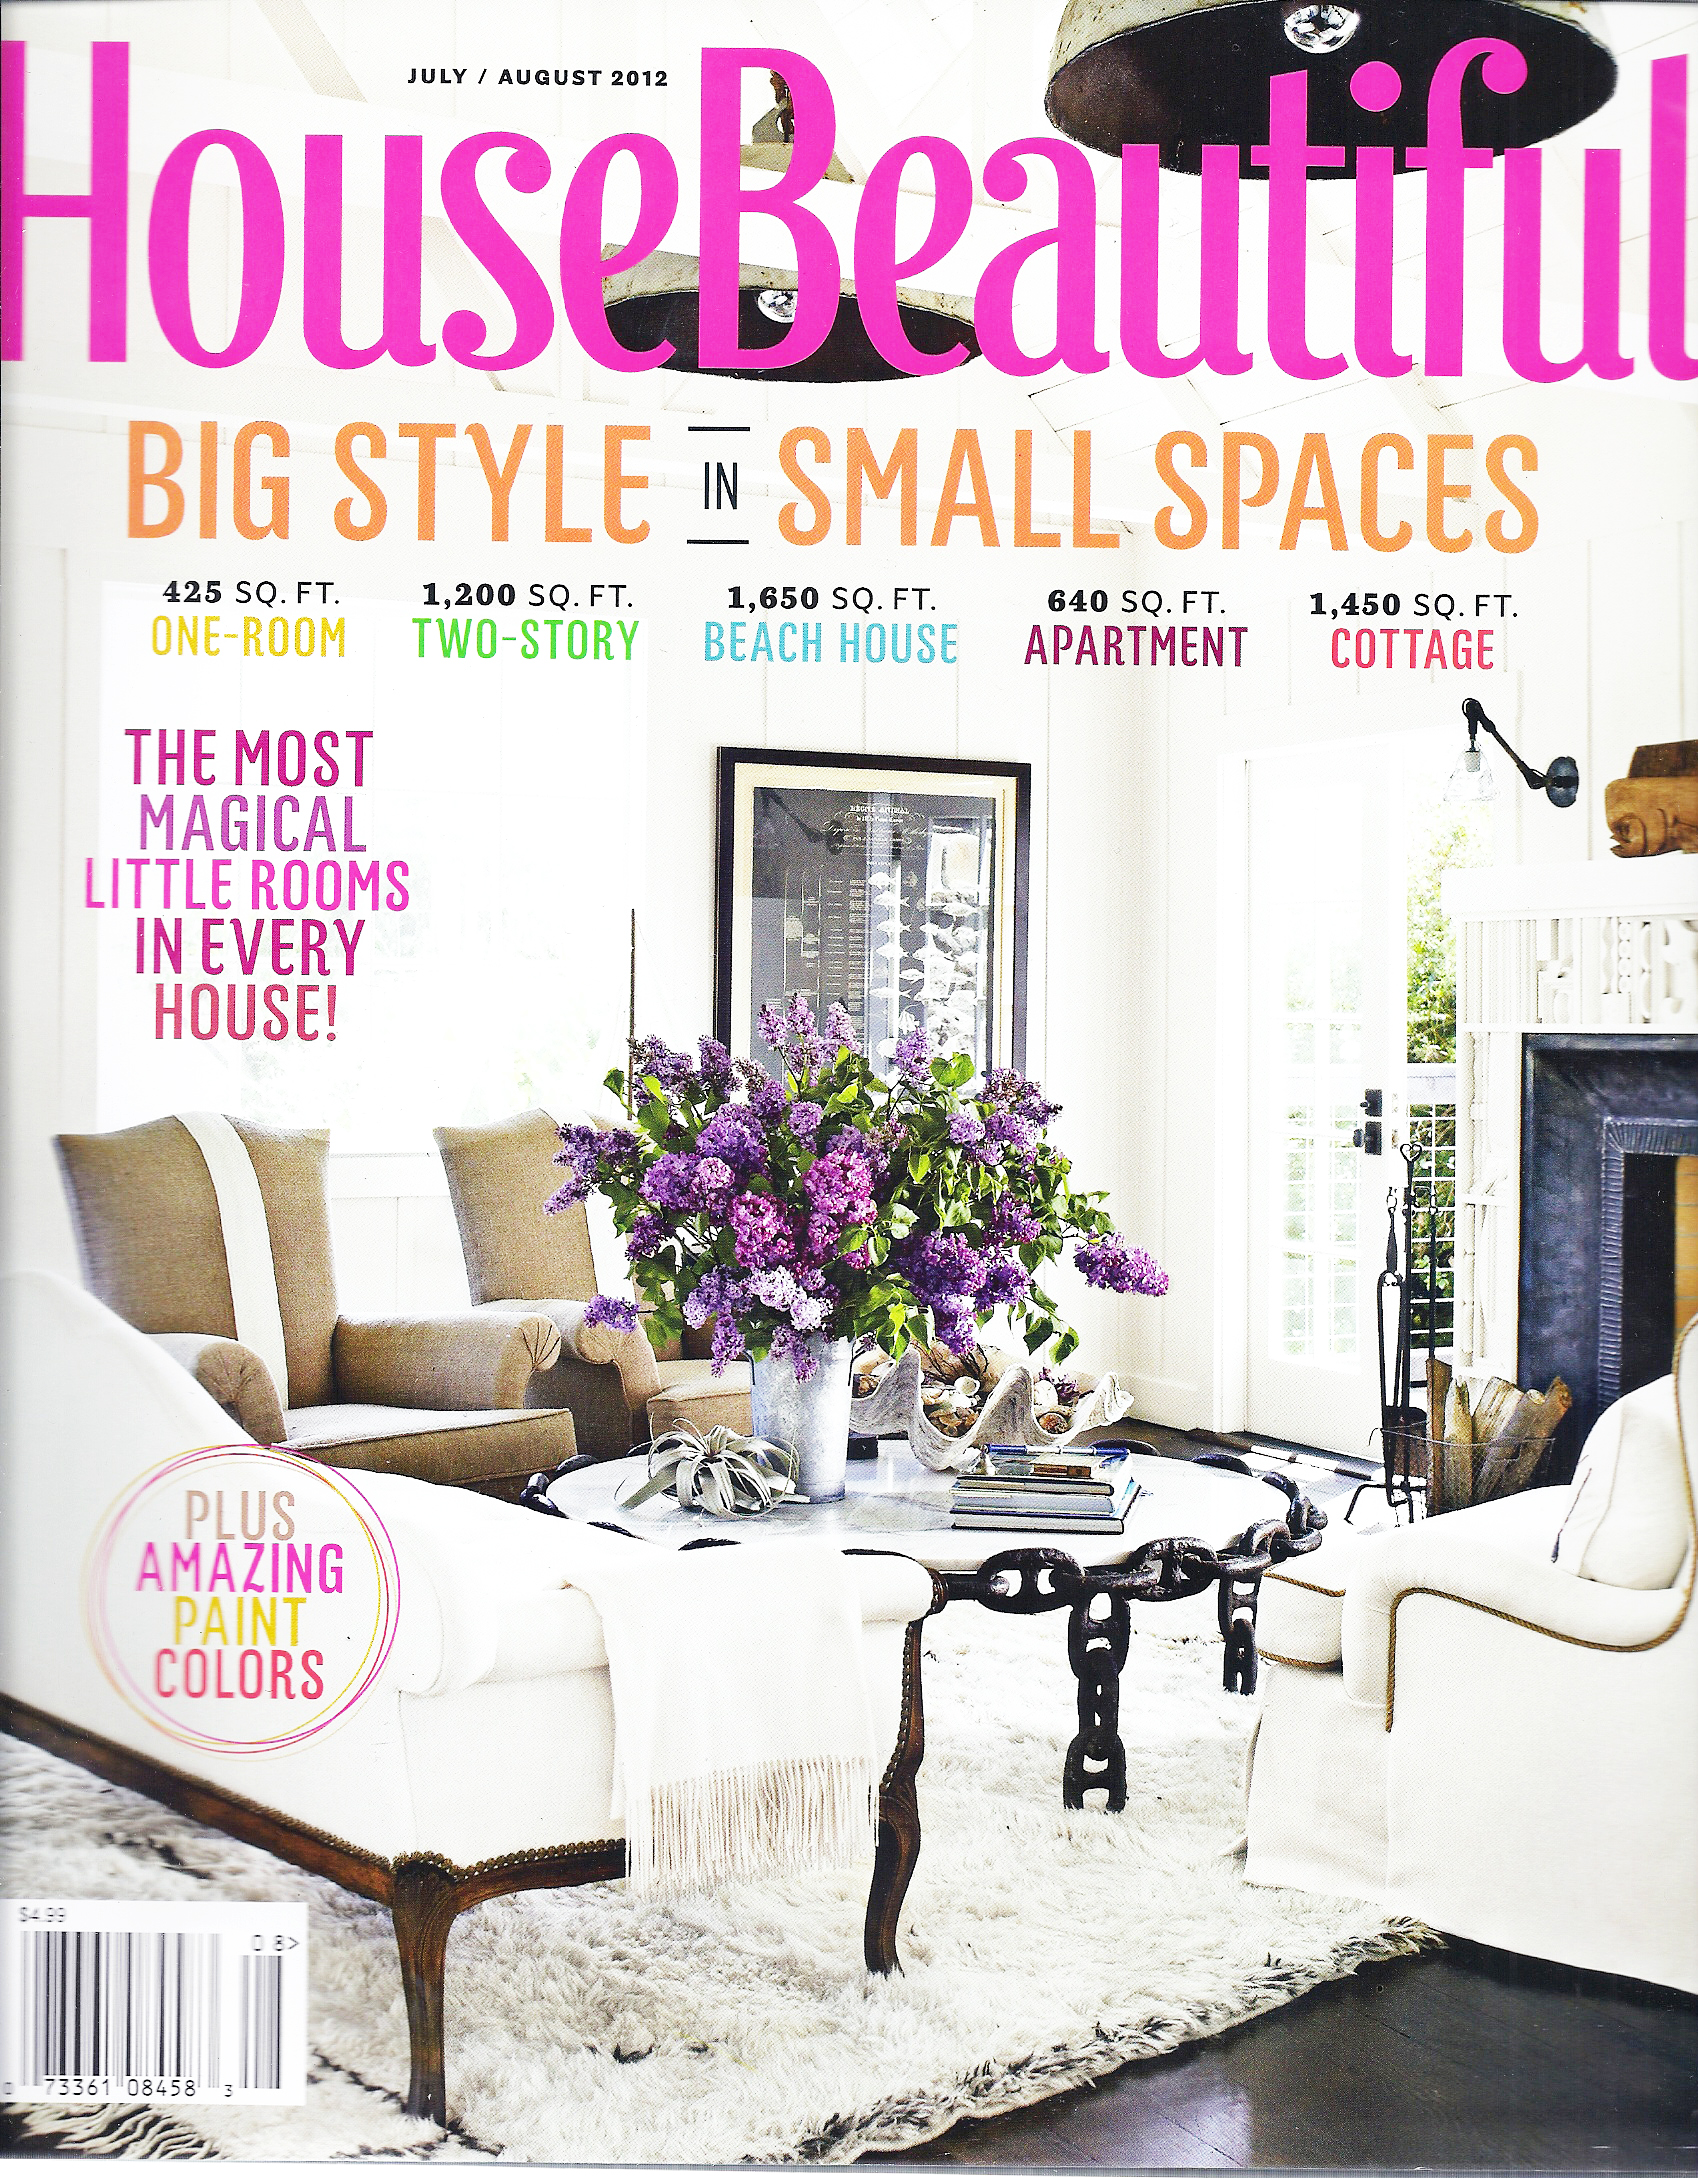 House Beatiful house beautiful magazine | interior provisions